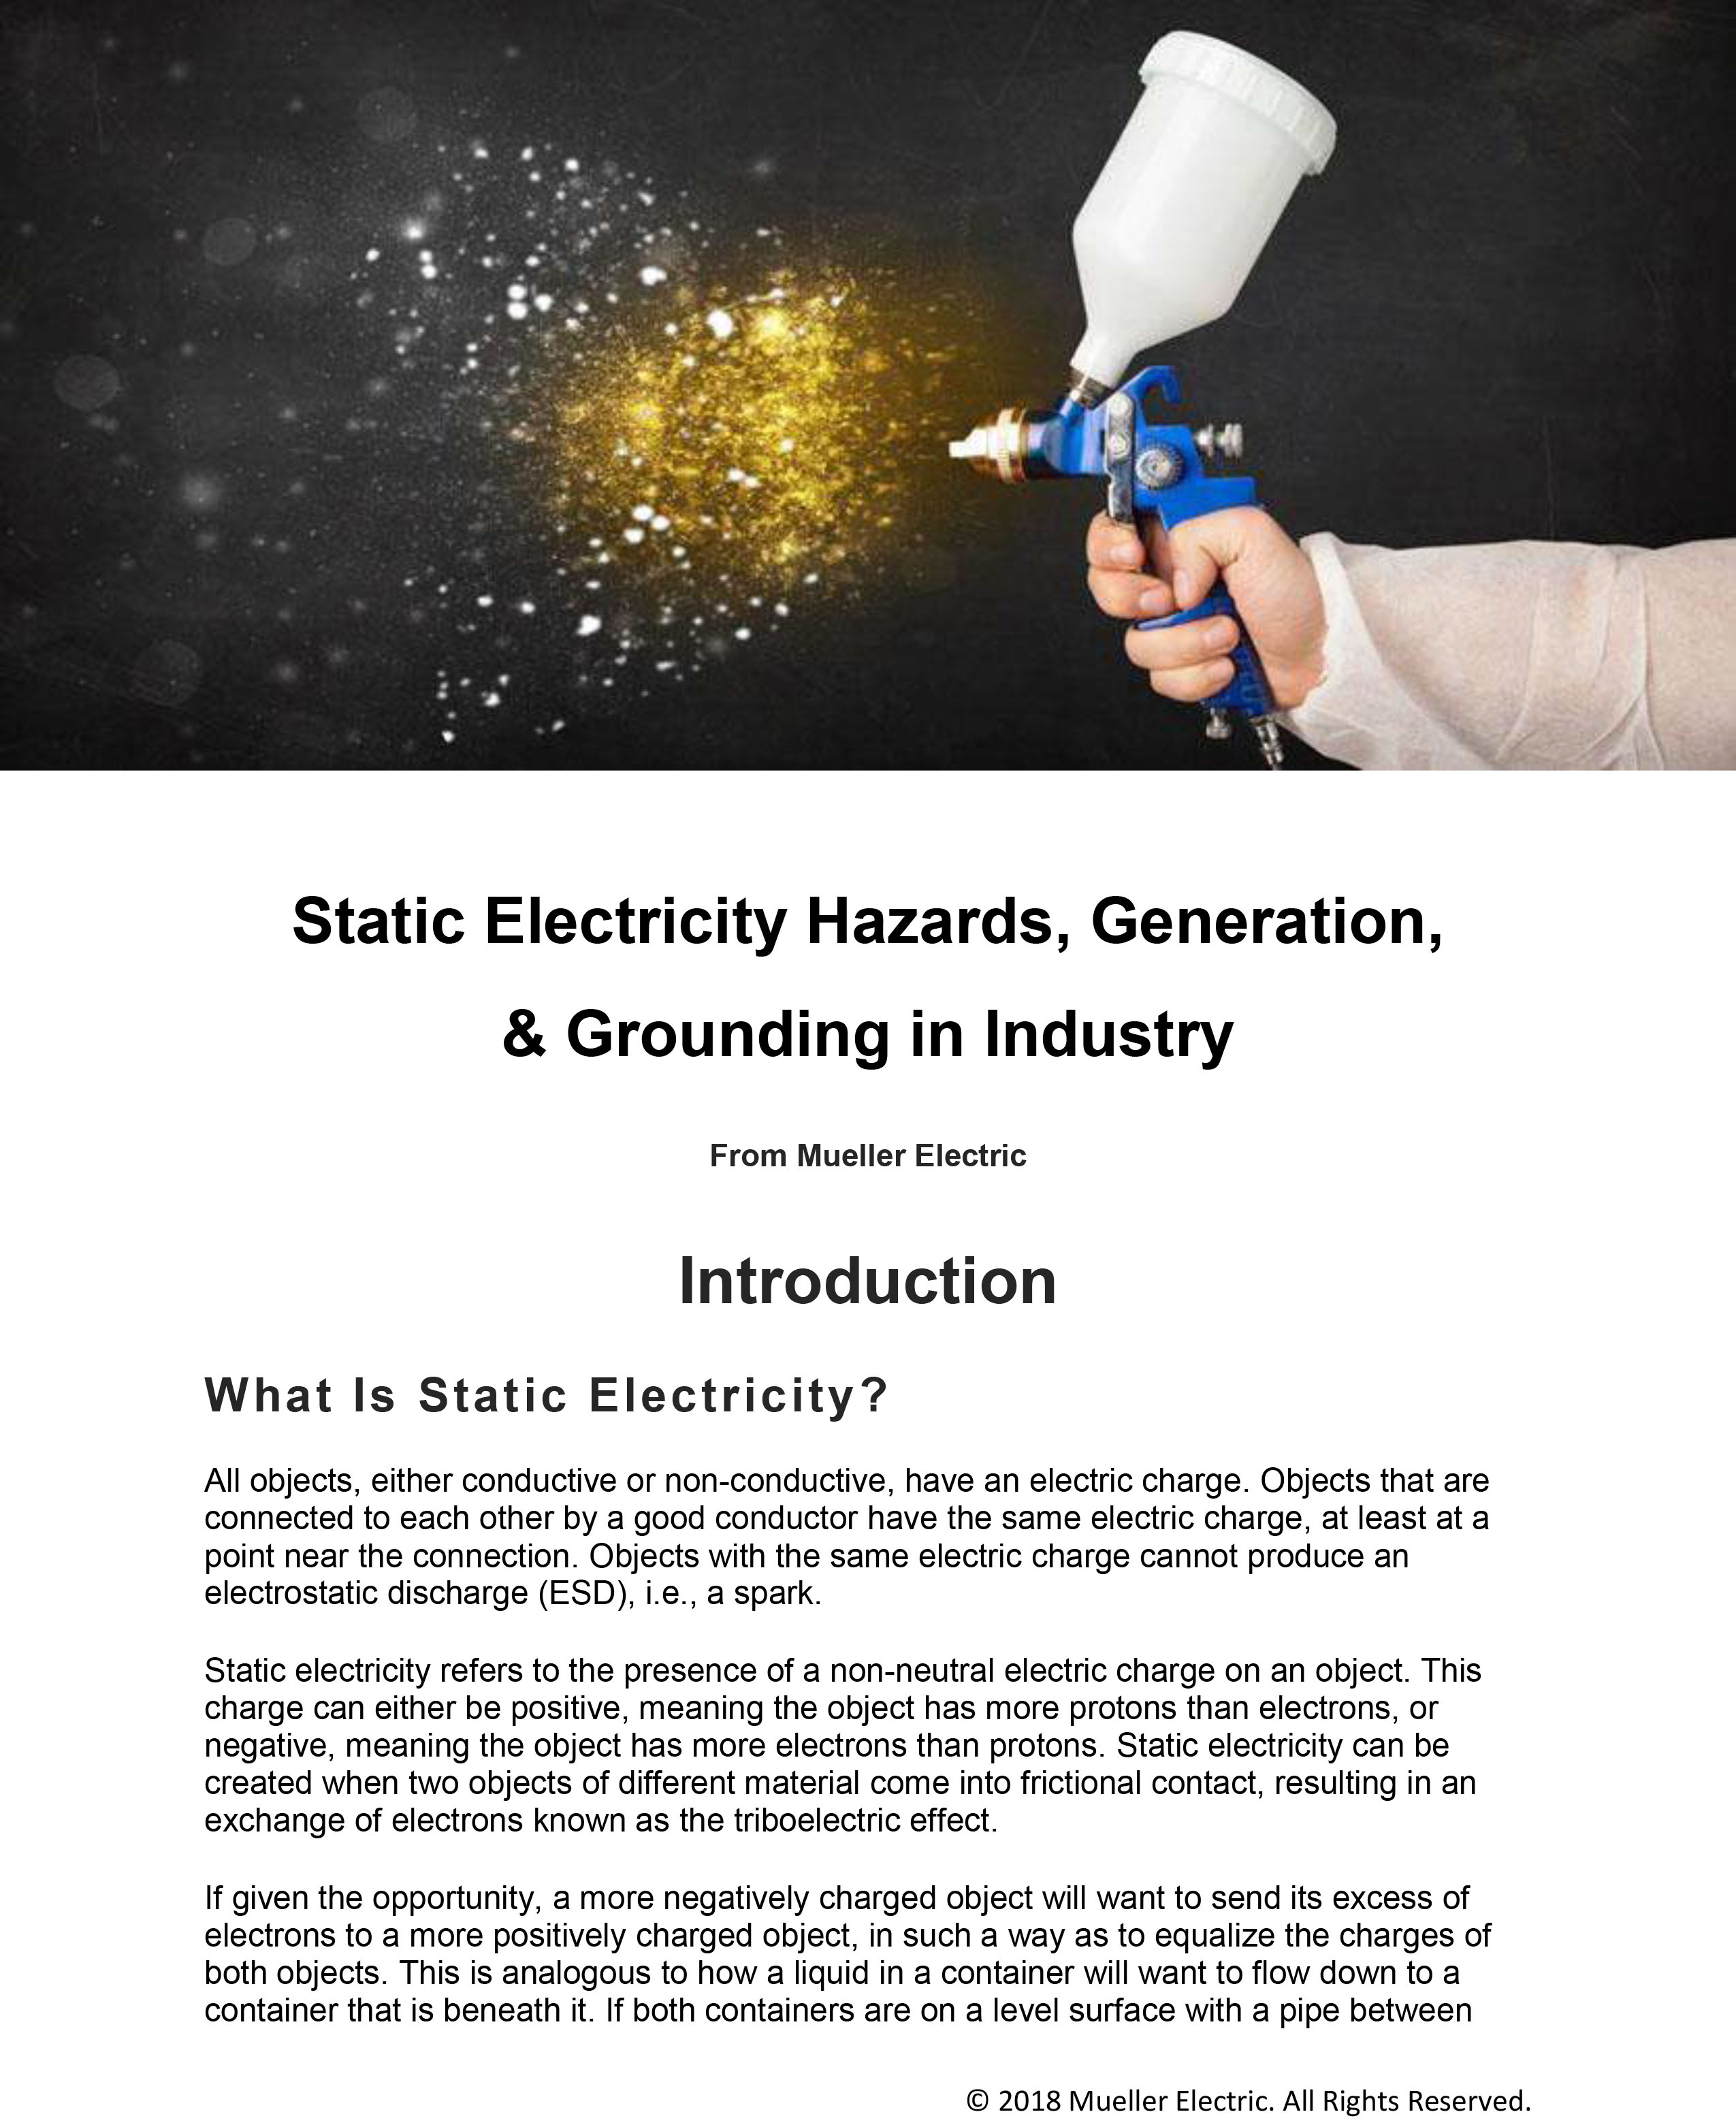 Static Electricity Hazards, Generation and  Grounding in Industry-1.jpg